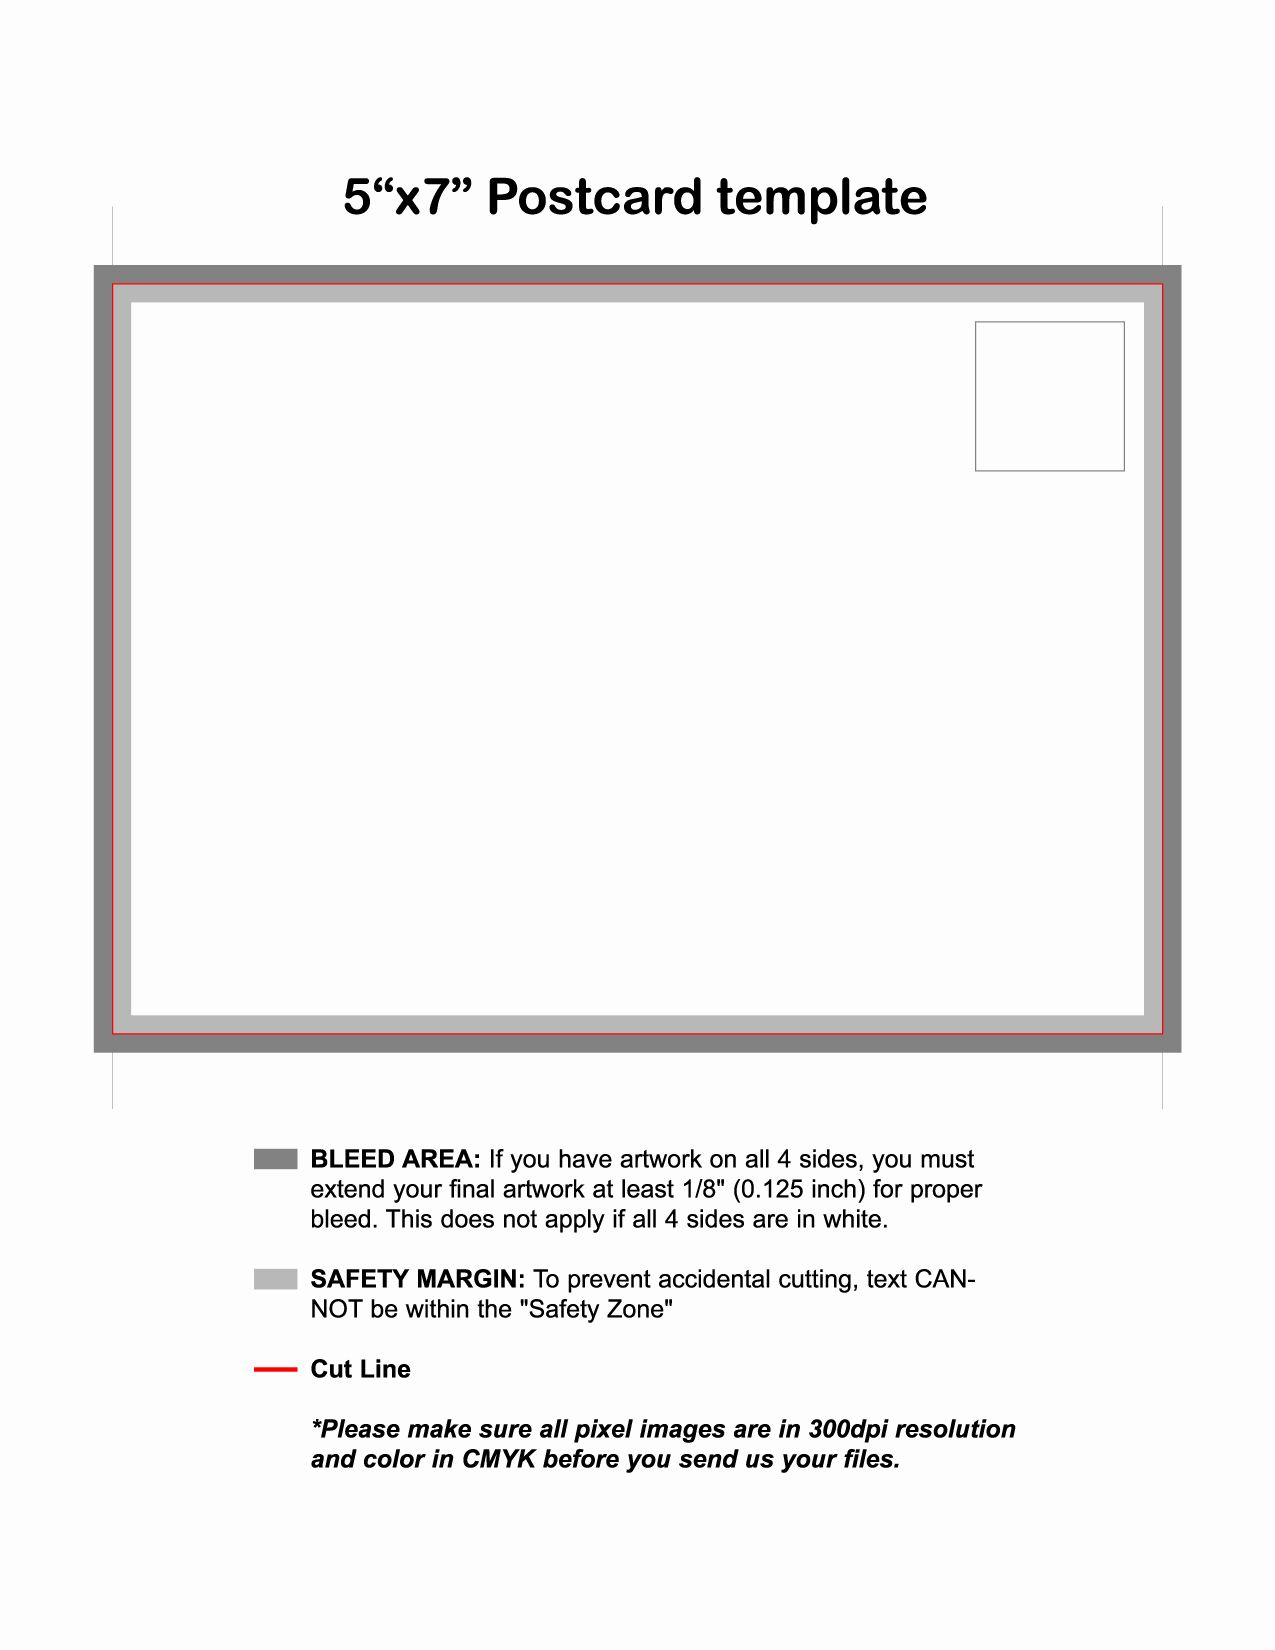 50 Elegant 5 7 Postcard Template For Word In 2020 With Images